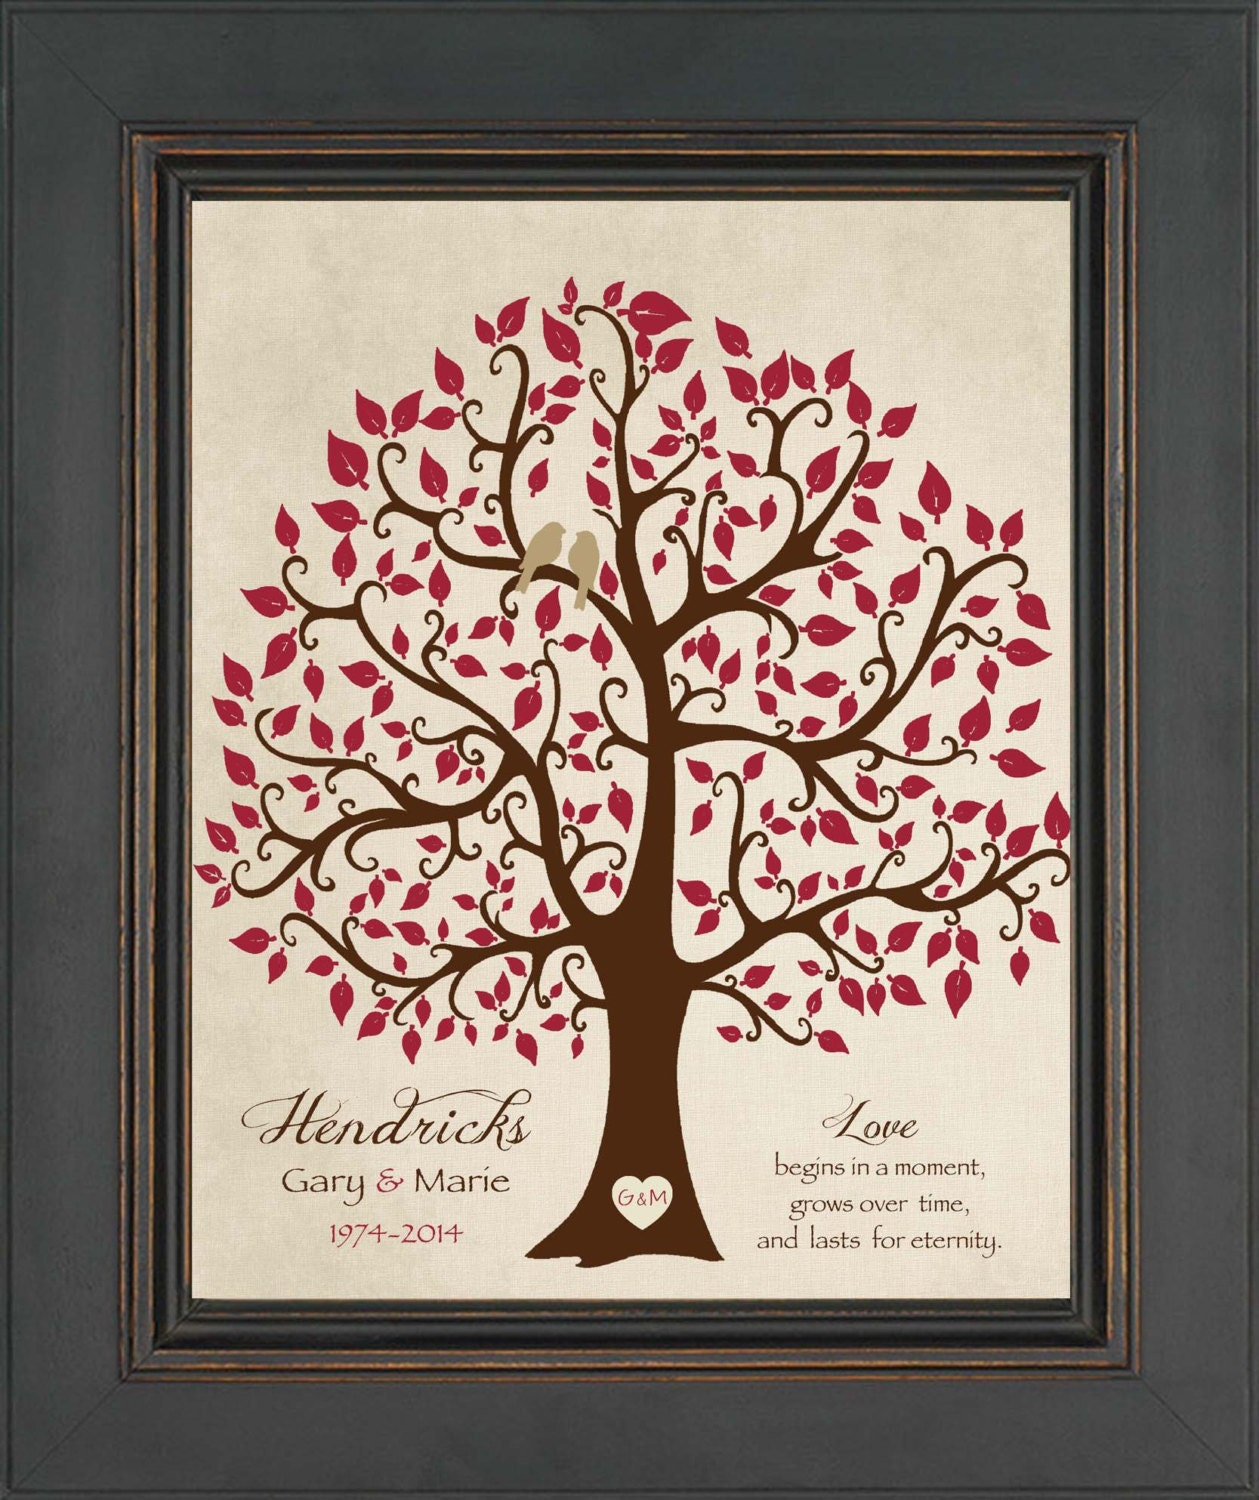 Wedding Anniversary Gifts For Parents 40 Years: 40th ANNIVERSARY Gift Print Personalized Gift For